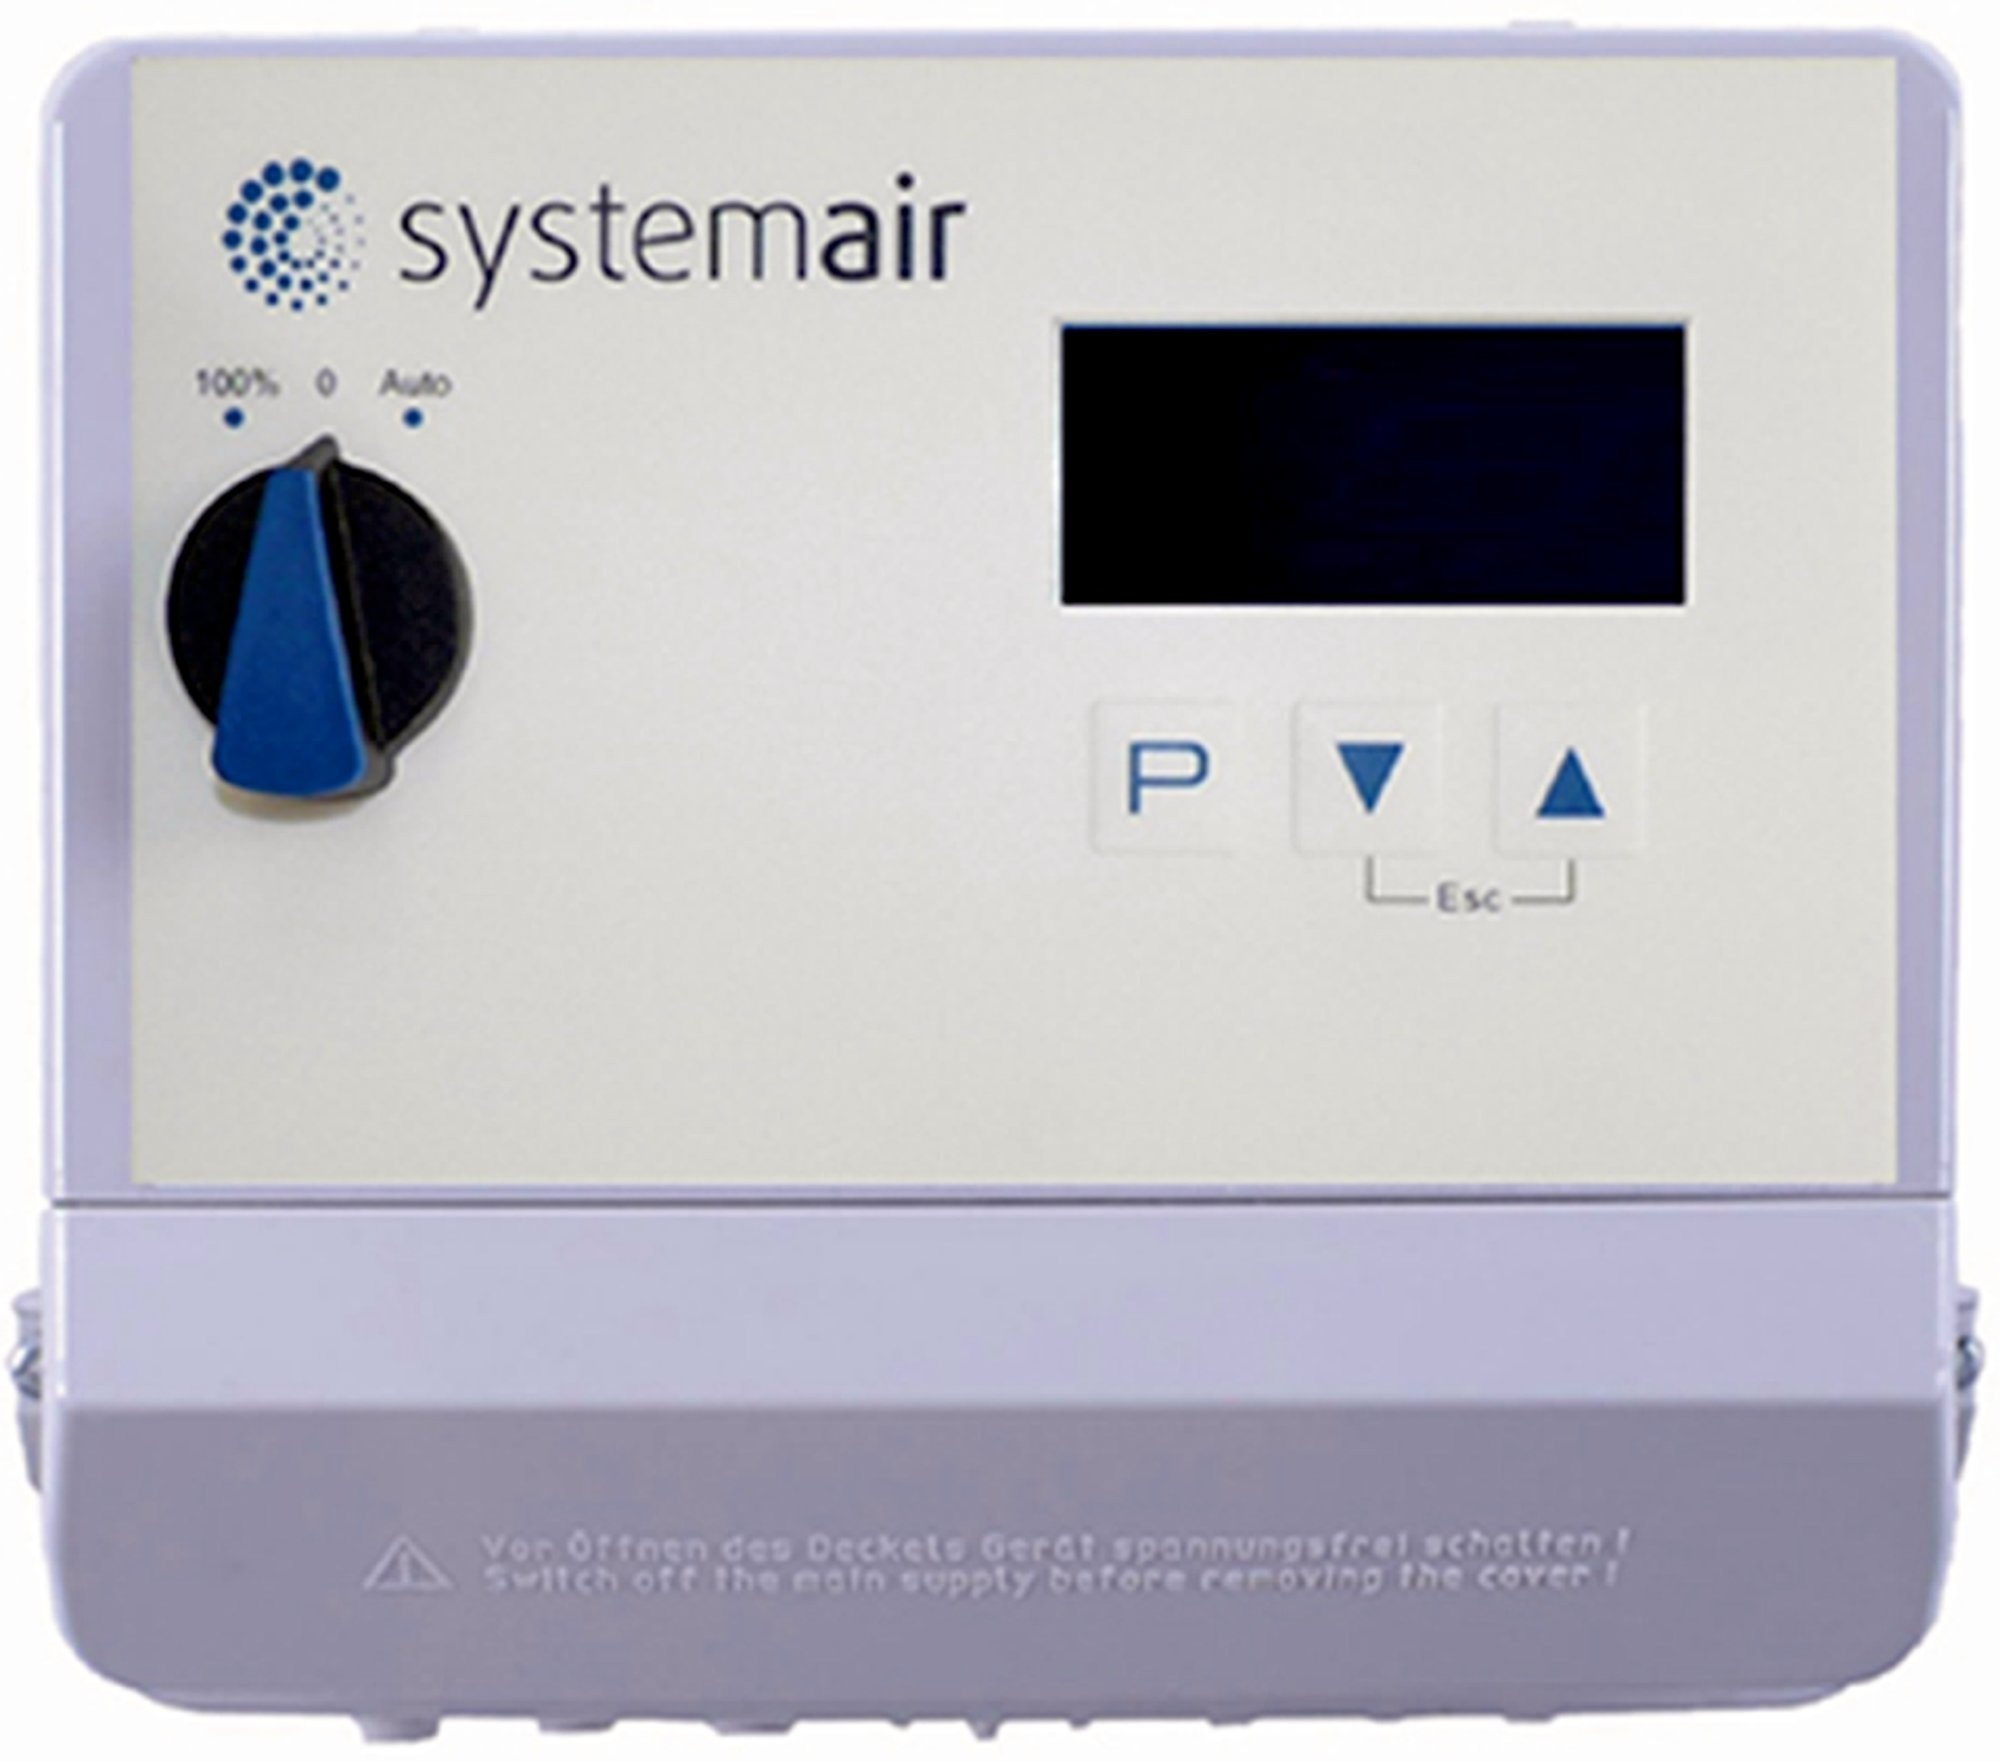 REPT 6 Digital regulator - Systemair